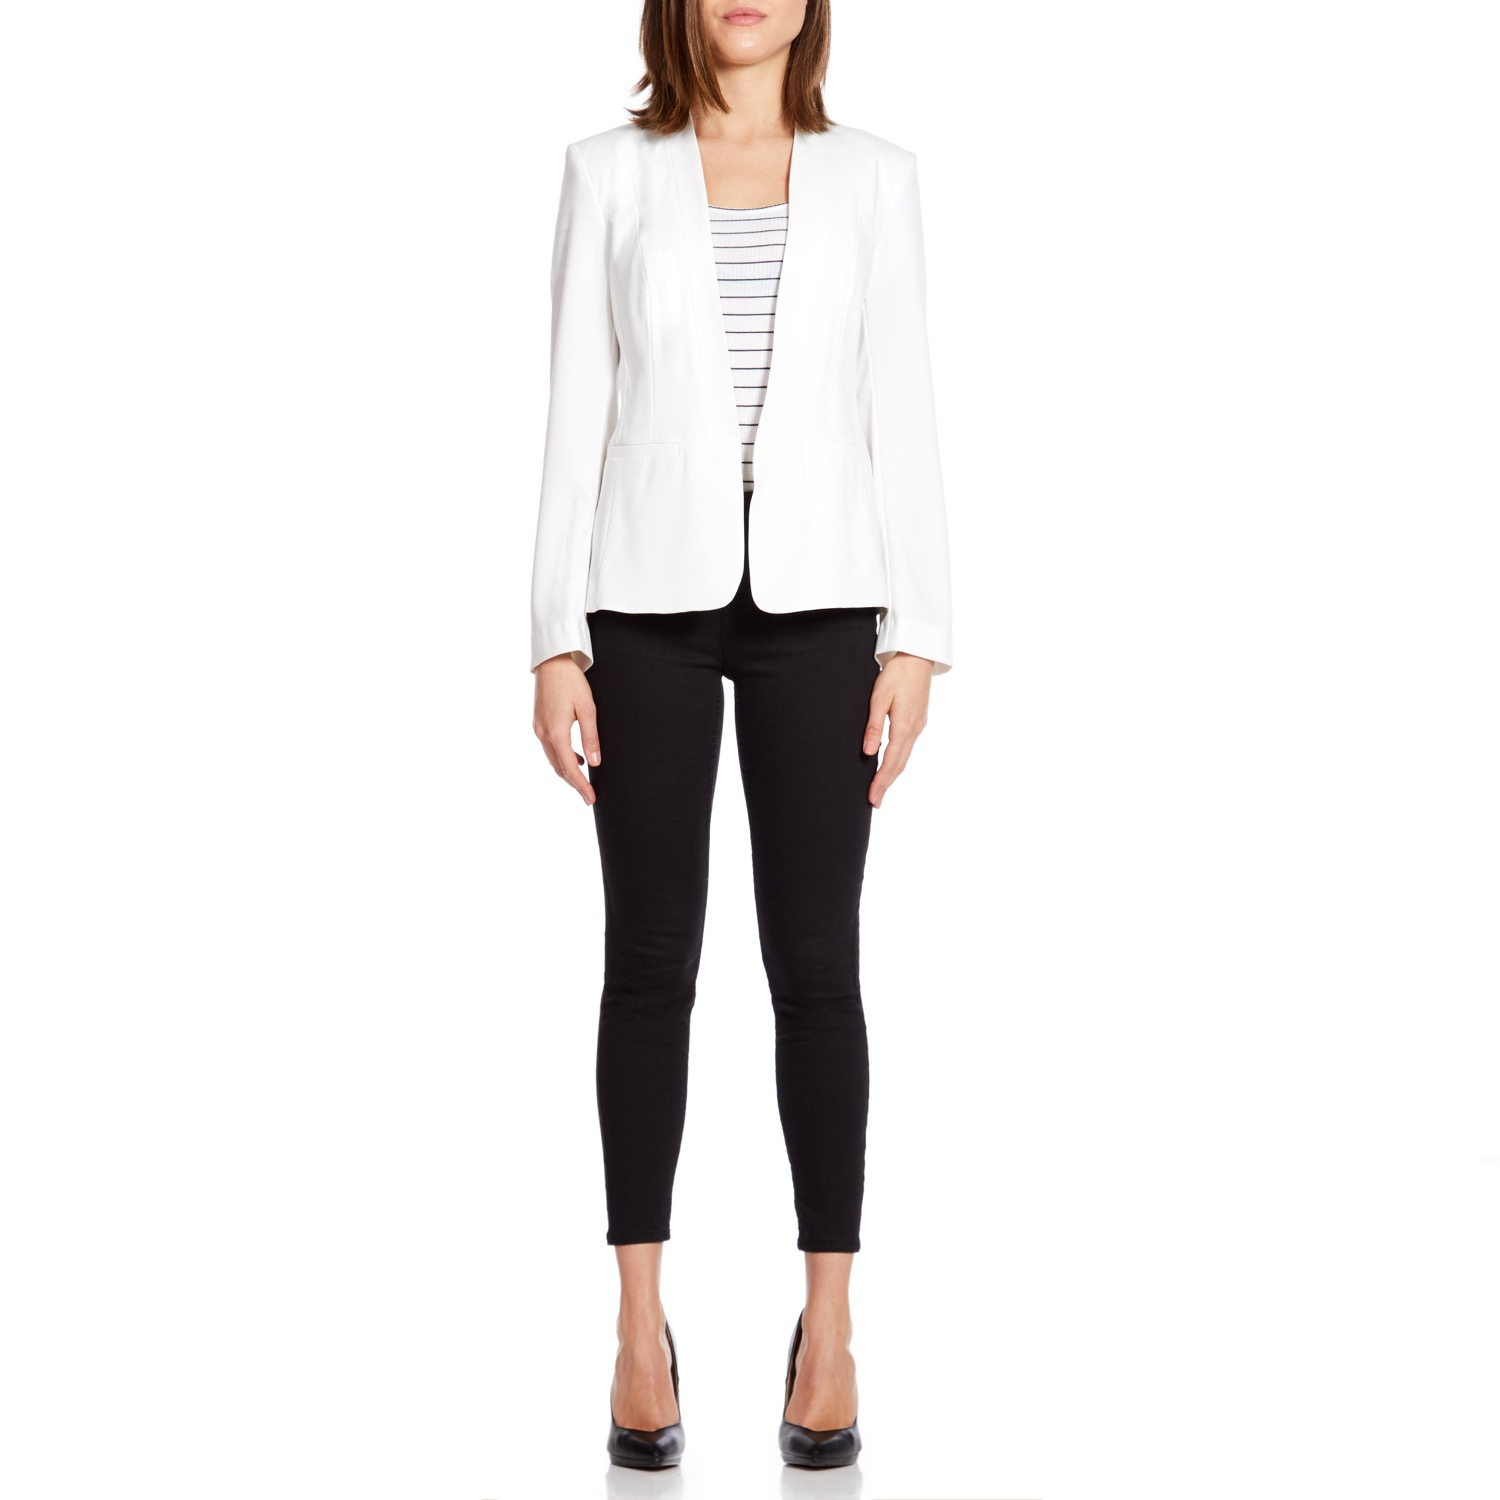 Anastasia - White Womens Unlined Spring Blazer Jacket